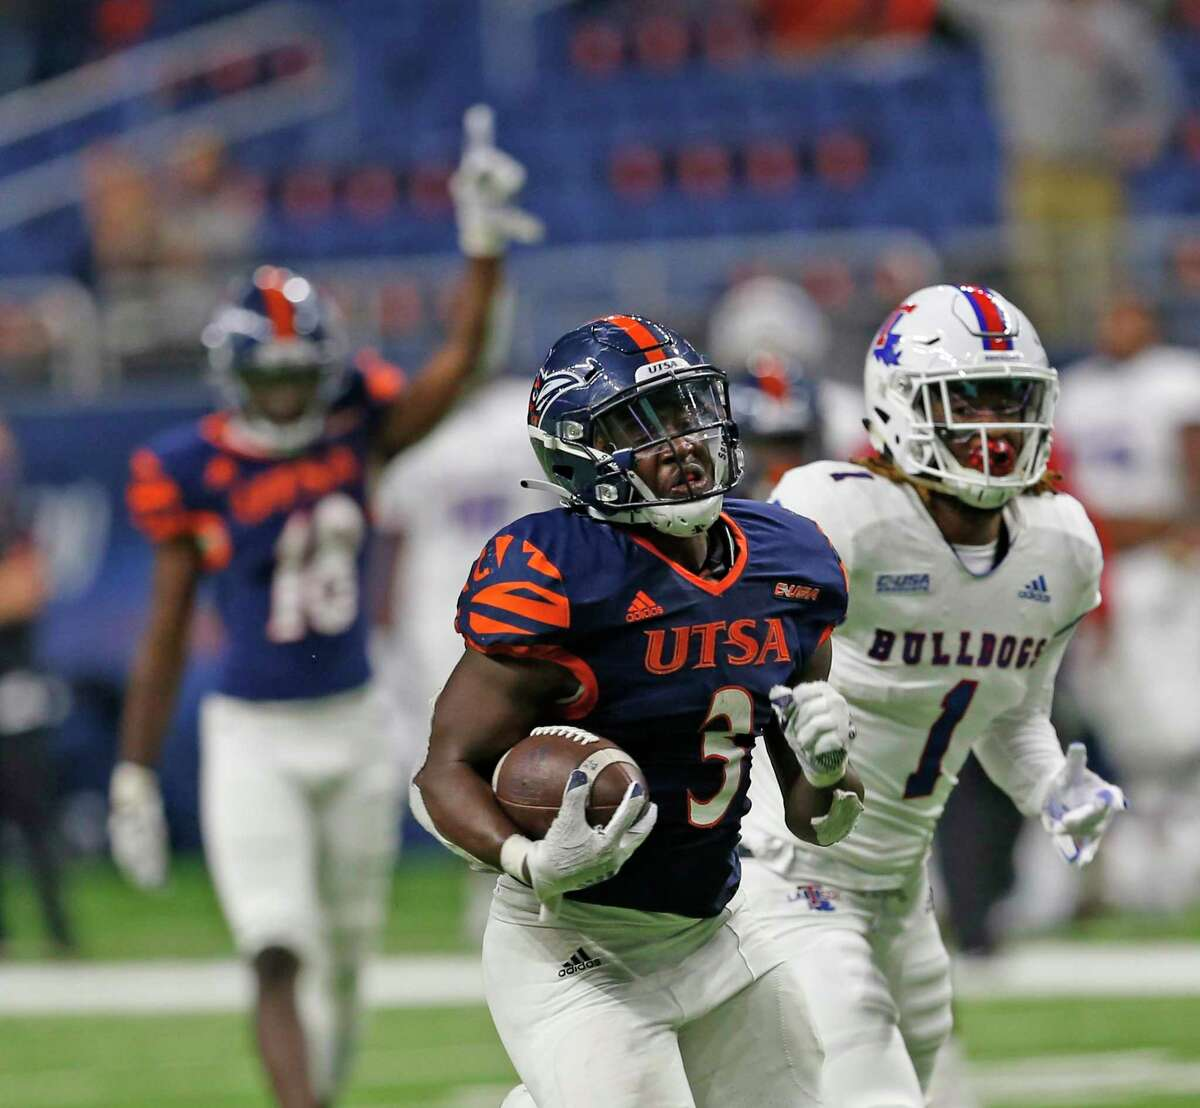 UTSA RB Sincere McCormick scores the winning touchdown on October 24, 2020 at the Alamodome.